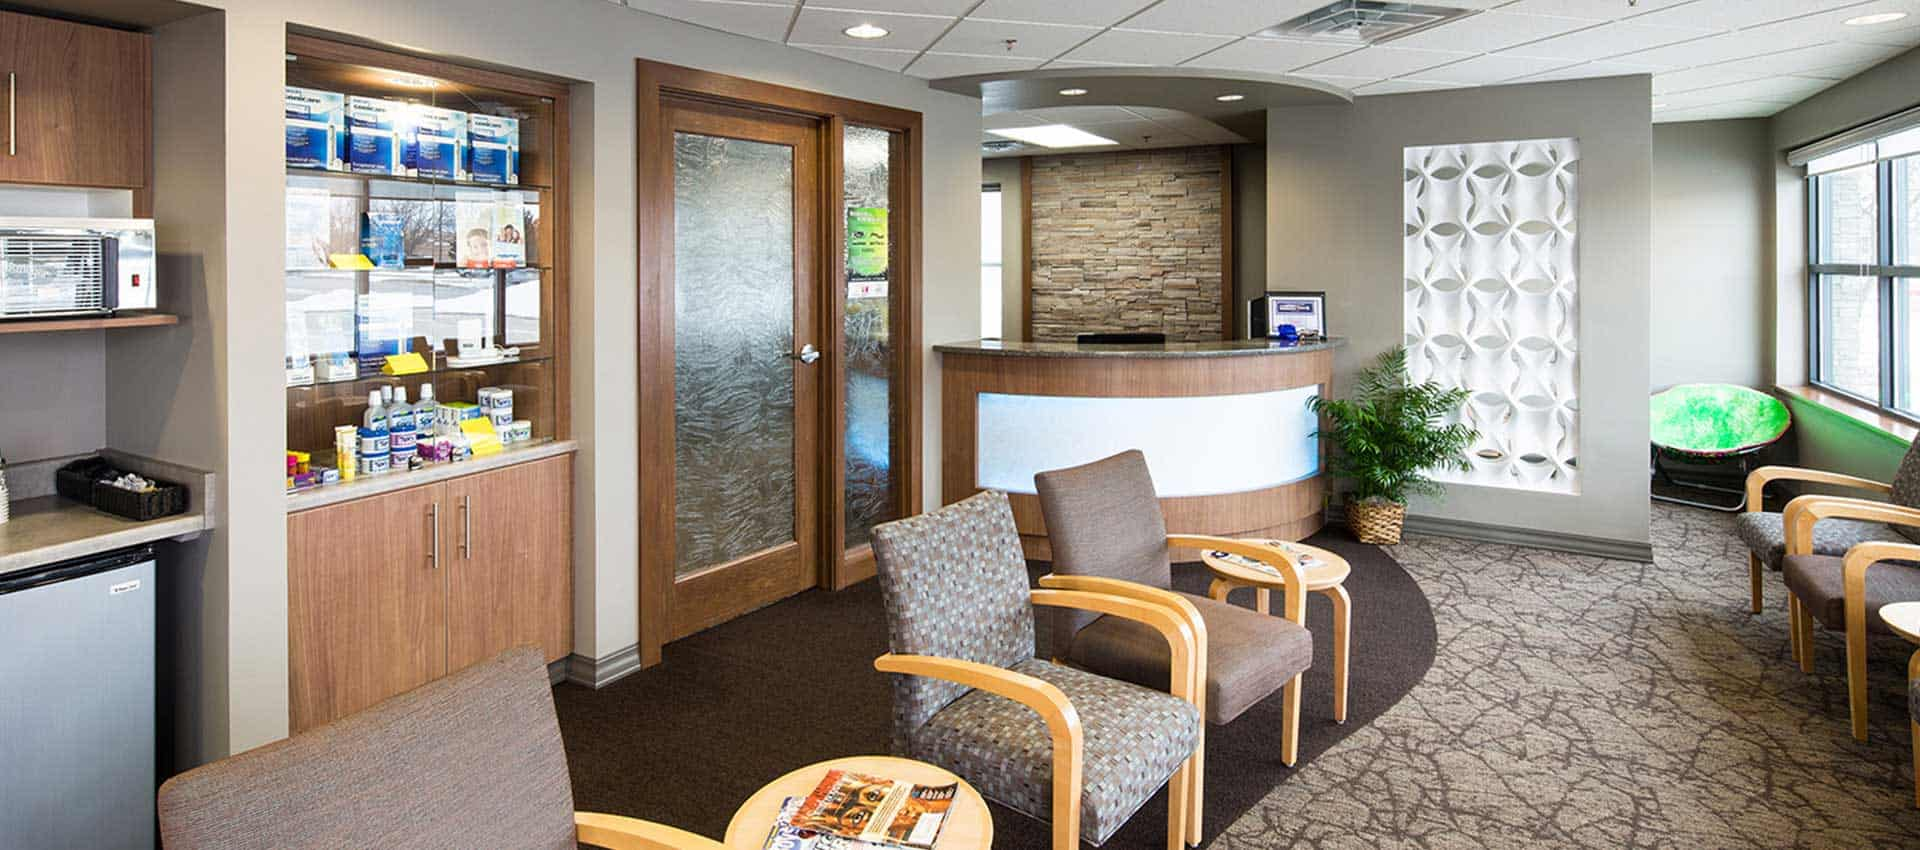 dental office waiting room - Dental Touch Associates in Cedar Rapids, IA